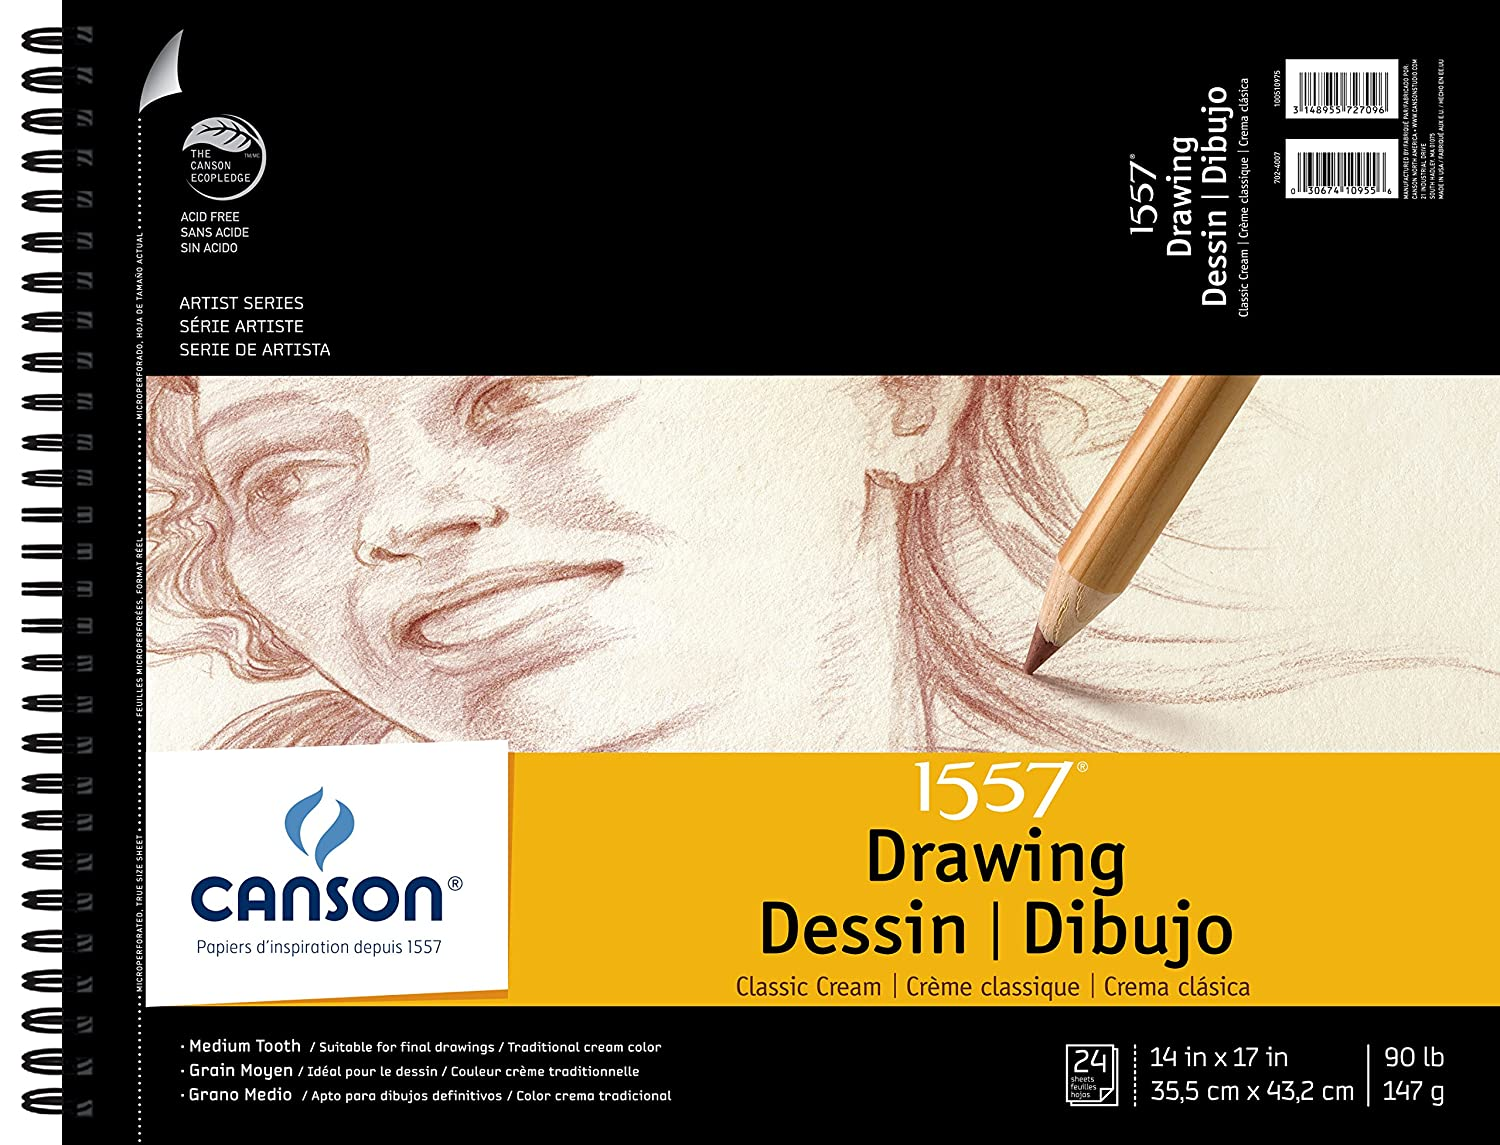 Canson Artist Series 1557 Cream Drawing Paper Pad for Pen, Ink and Graphite Pencil, Top Wire Bound, 90 Pound, 14 x 17 Inch, Cream, 24 Sheets CANSON Inc 100510975